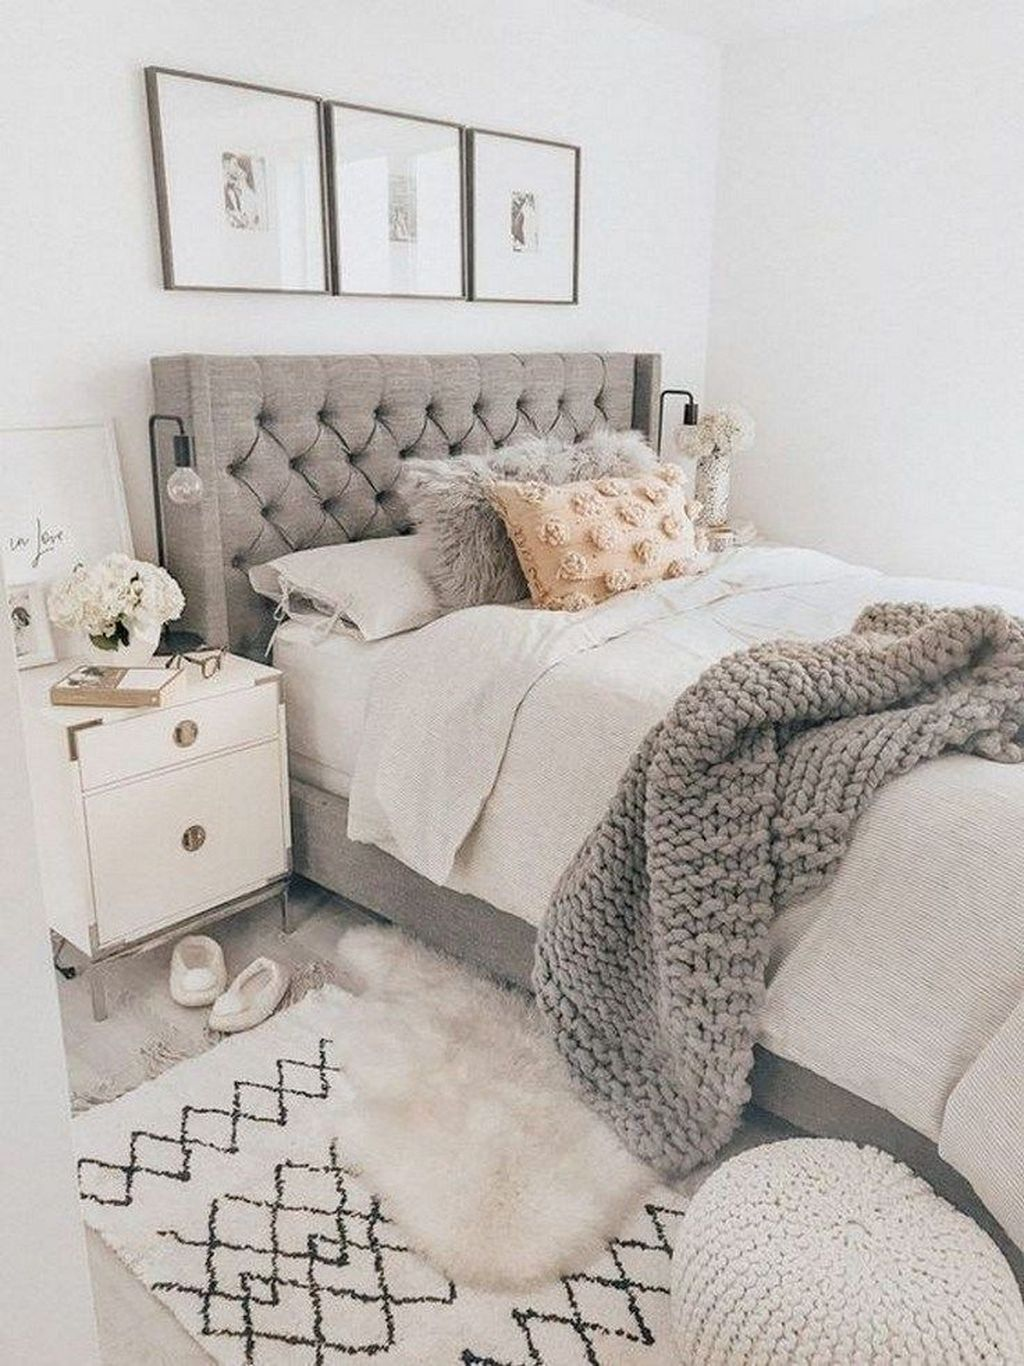 Admirable Small Bedroom Decor Ideas You Never Seen Before 29